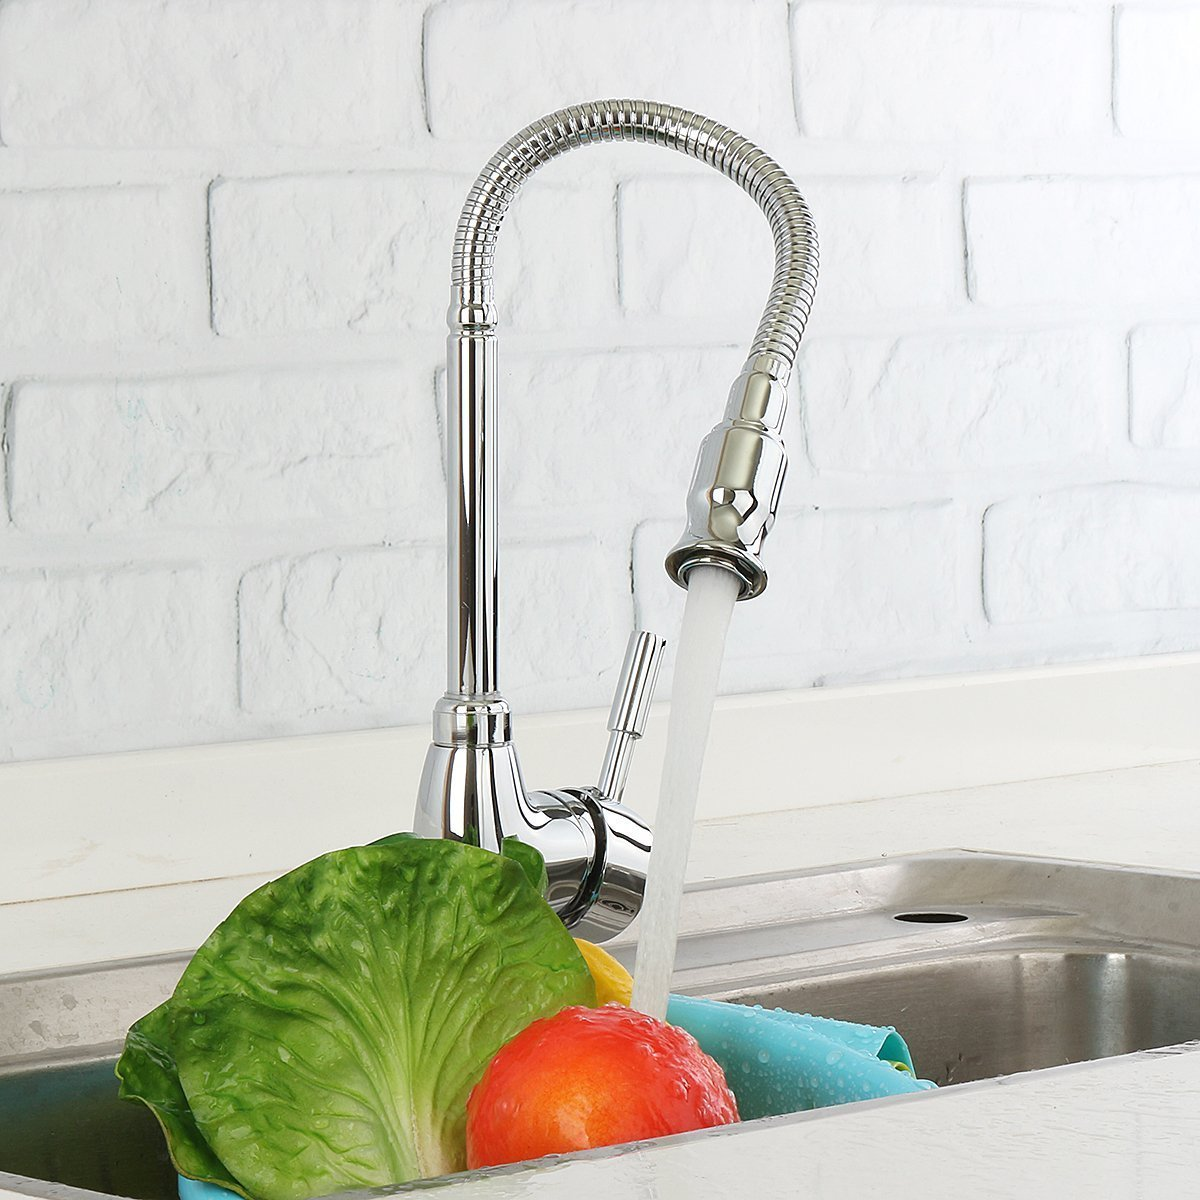 Amazon: Kitchen Sink Faucet 360 Degree Rotatable Faucet 50% With ...